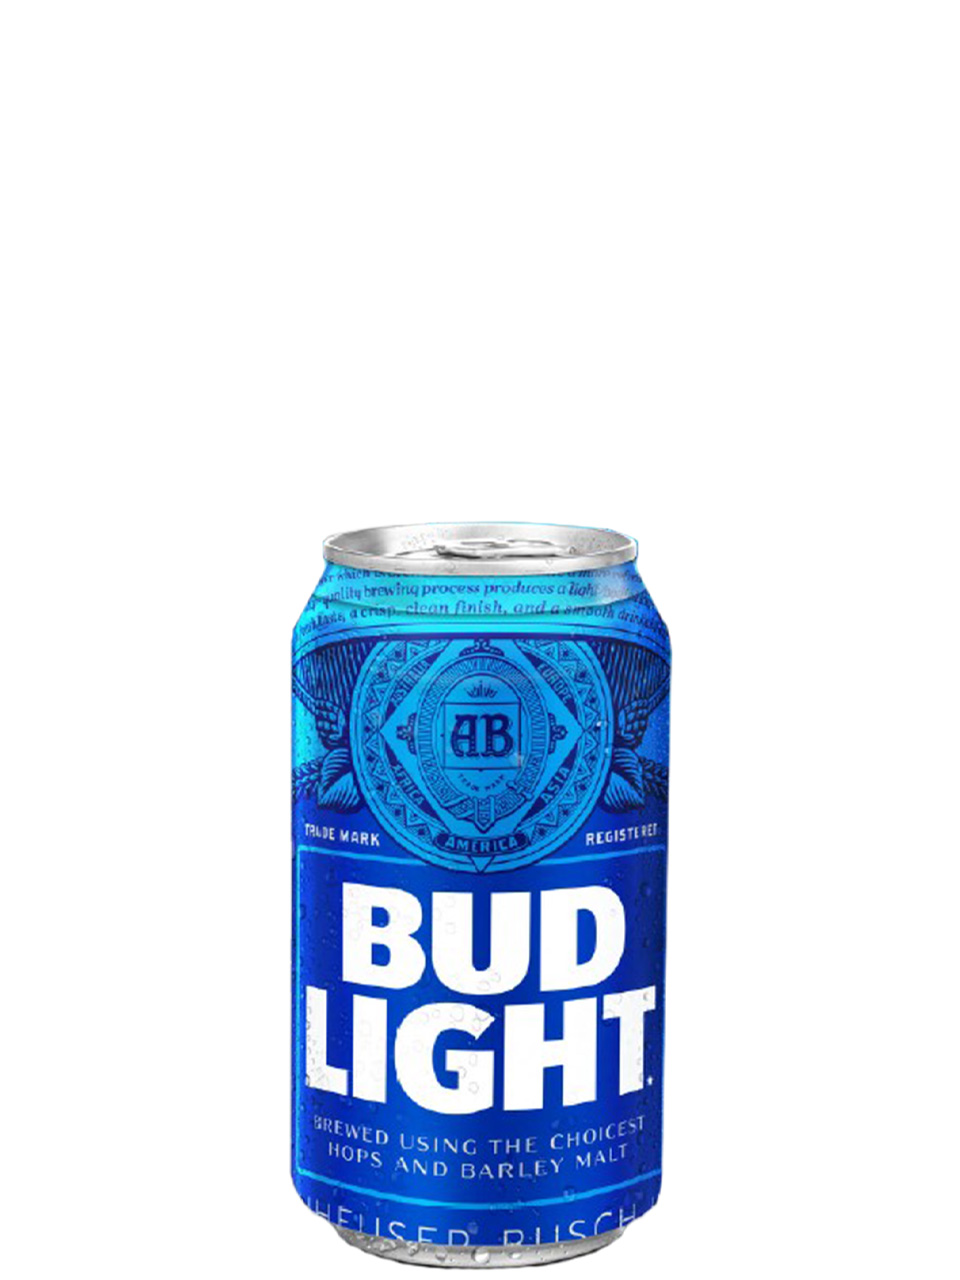 Bud Light Cans 8pk